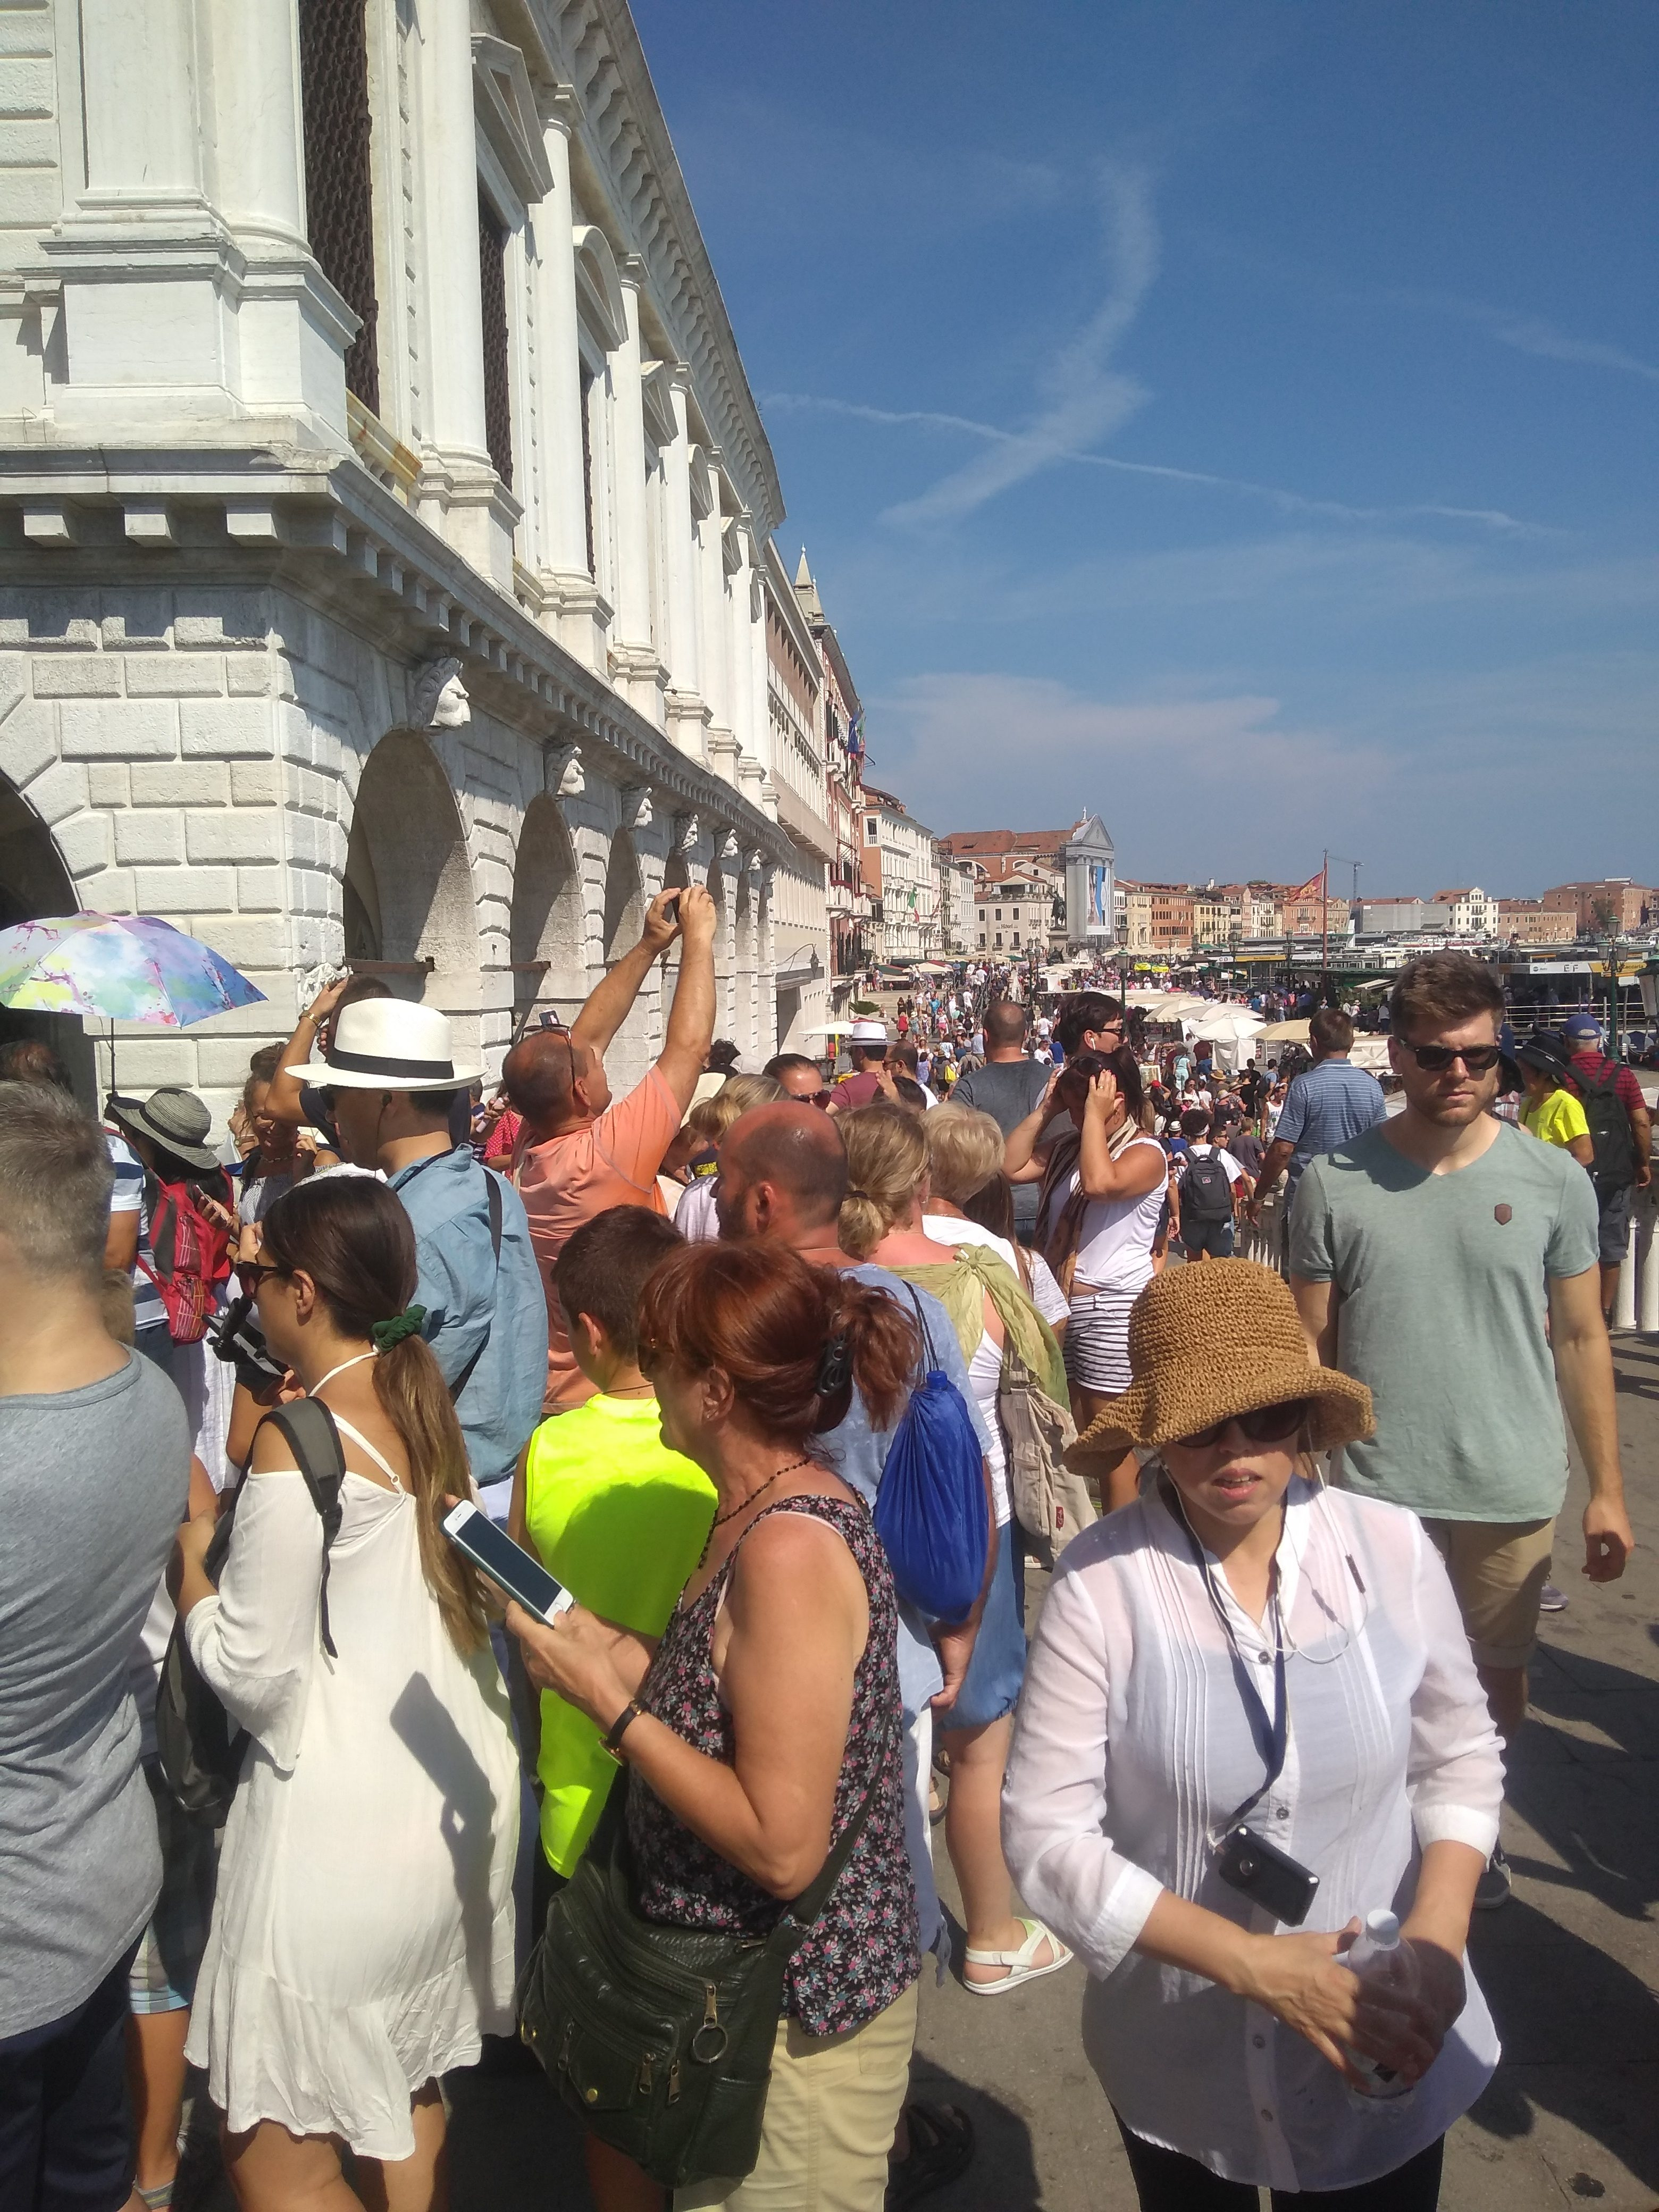 full of people tourism venice